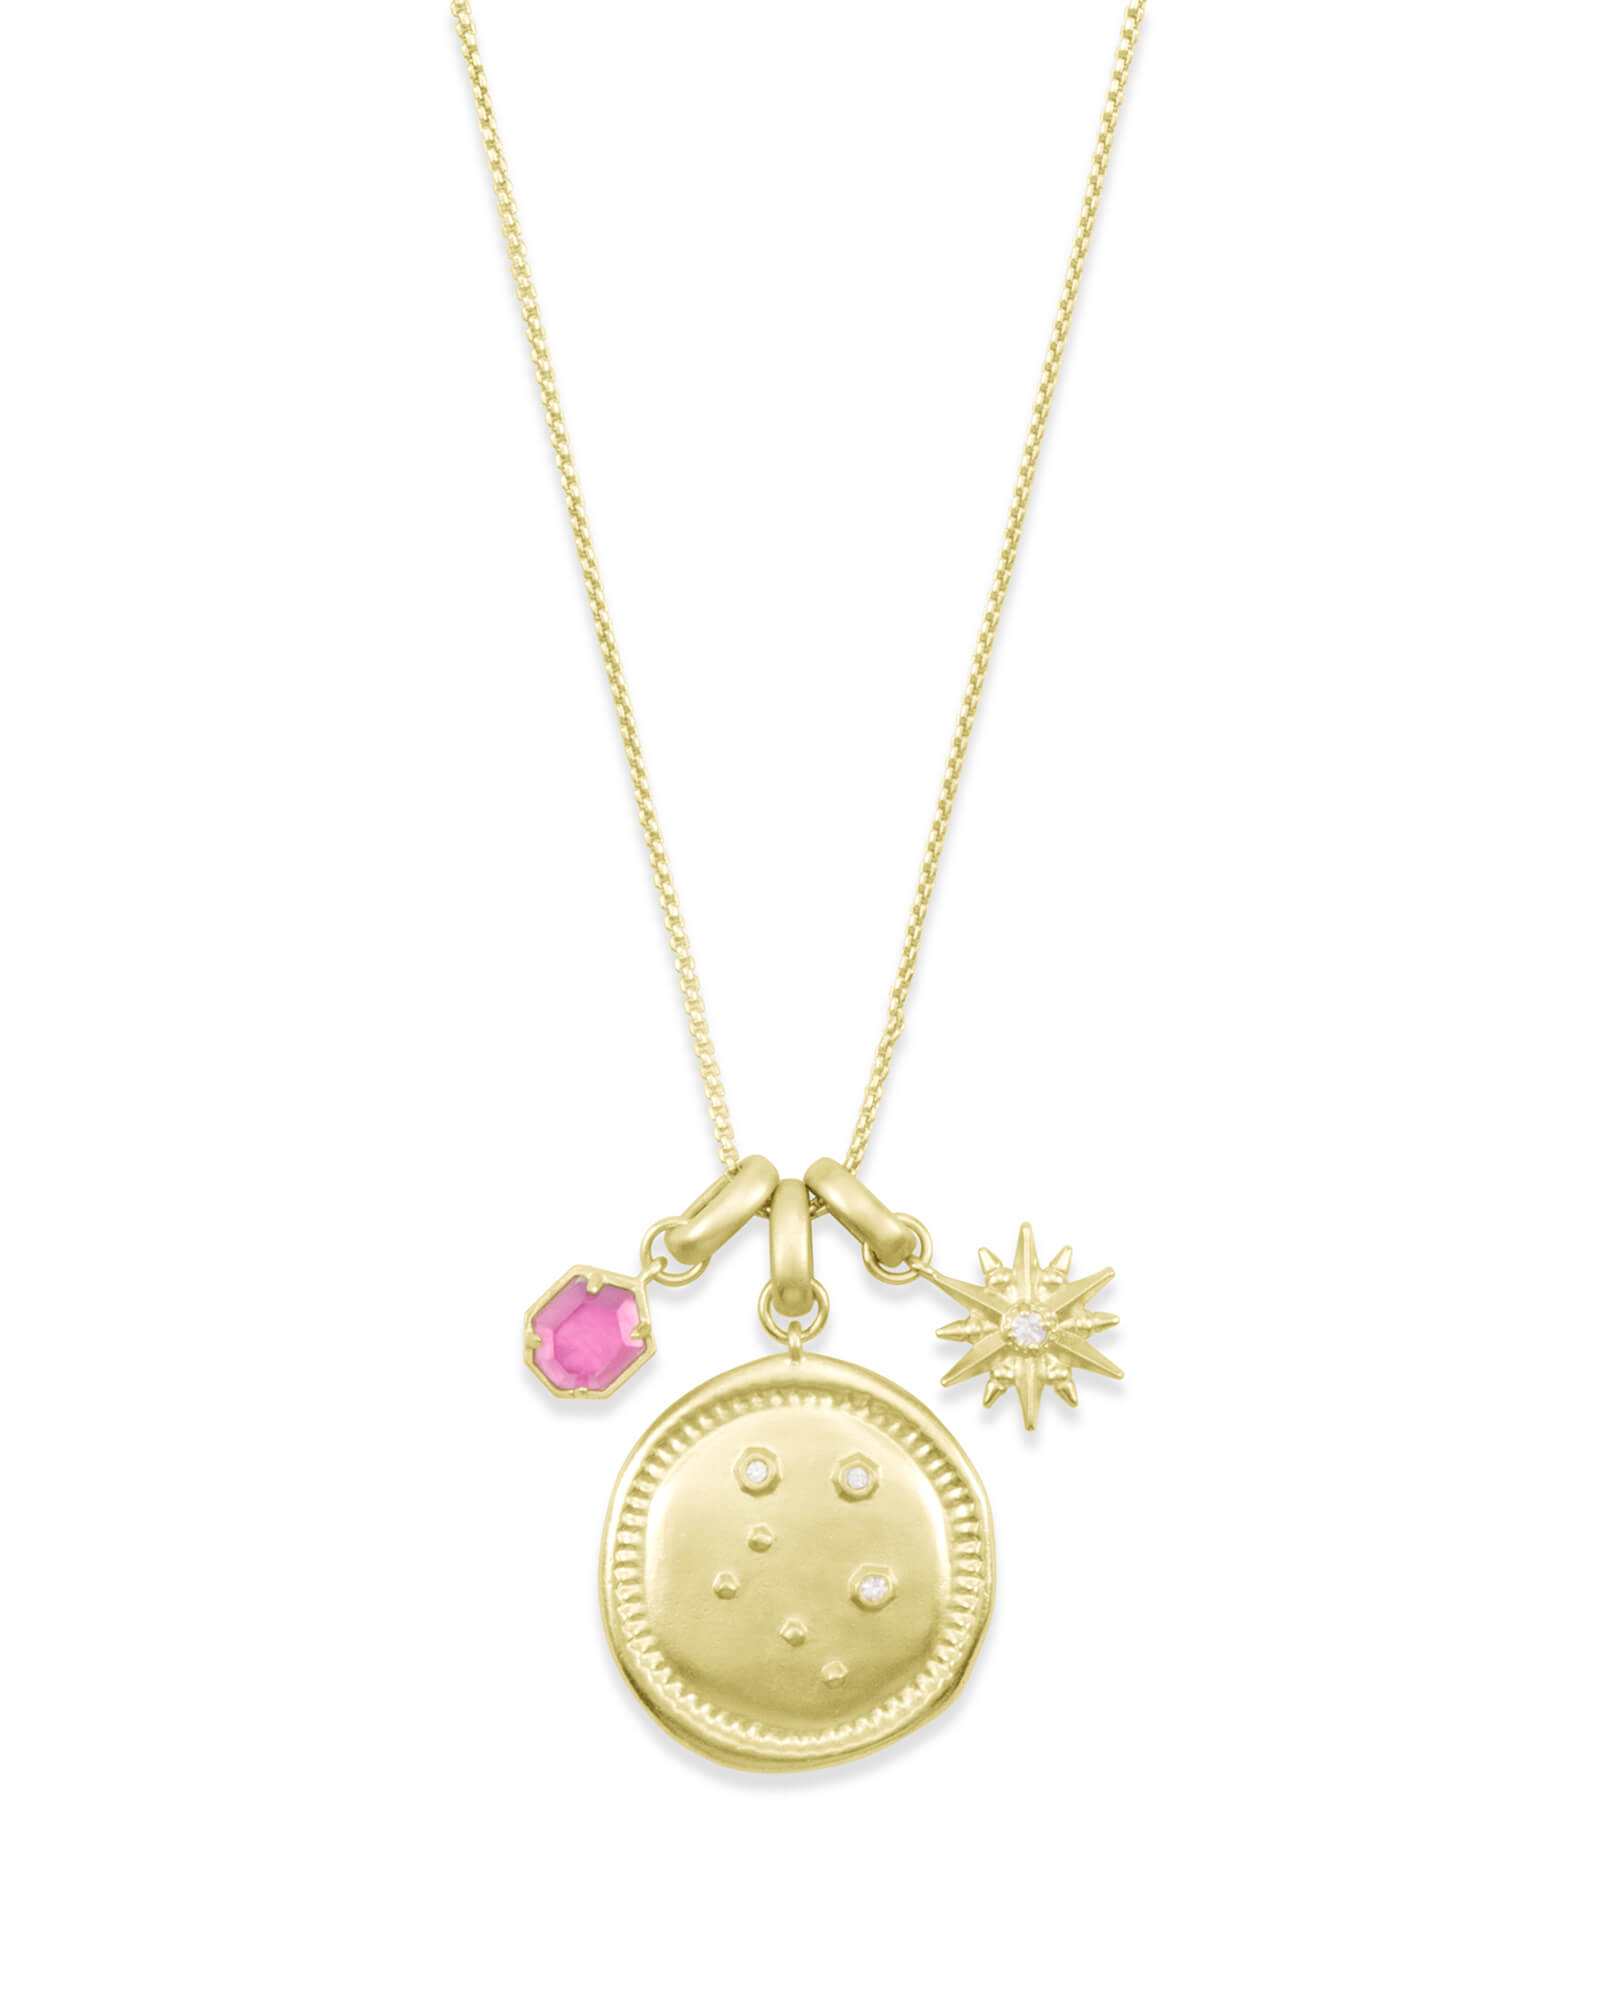 October Libra Charm Necklace Set in Gold